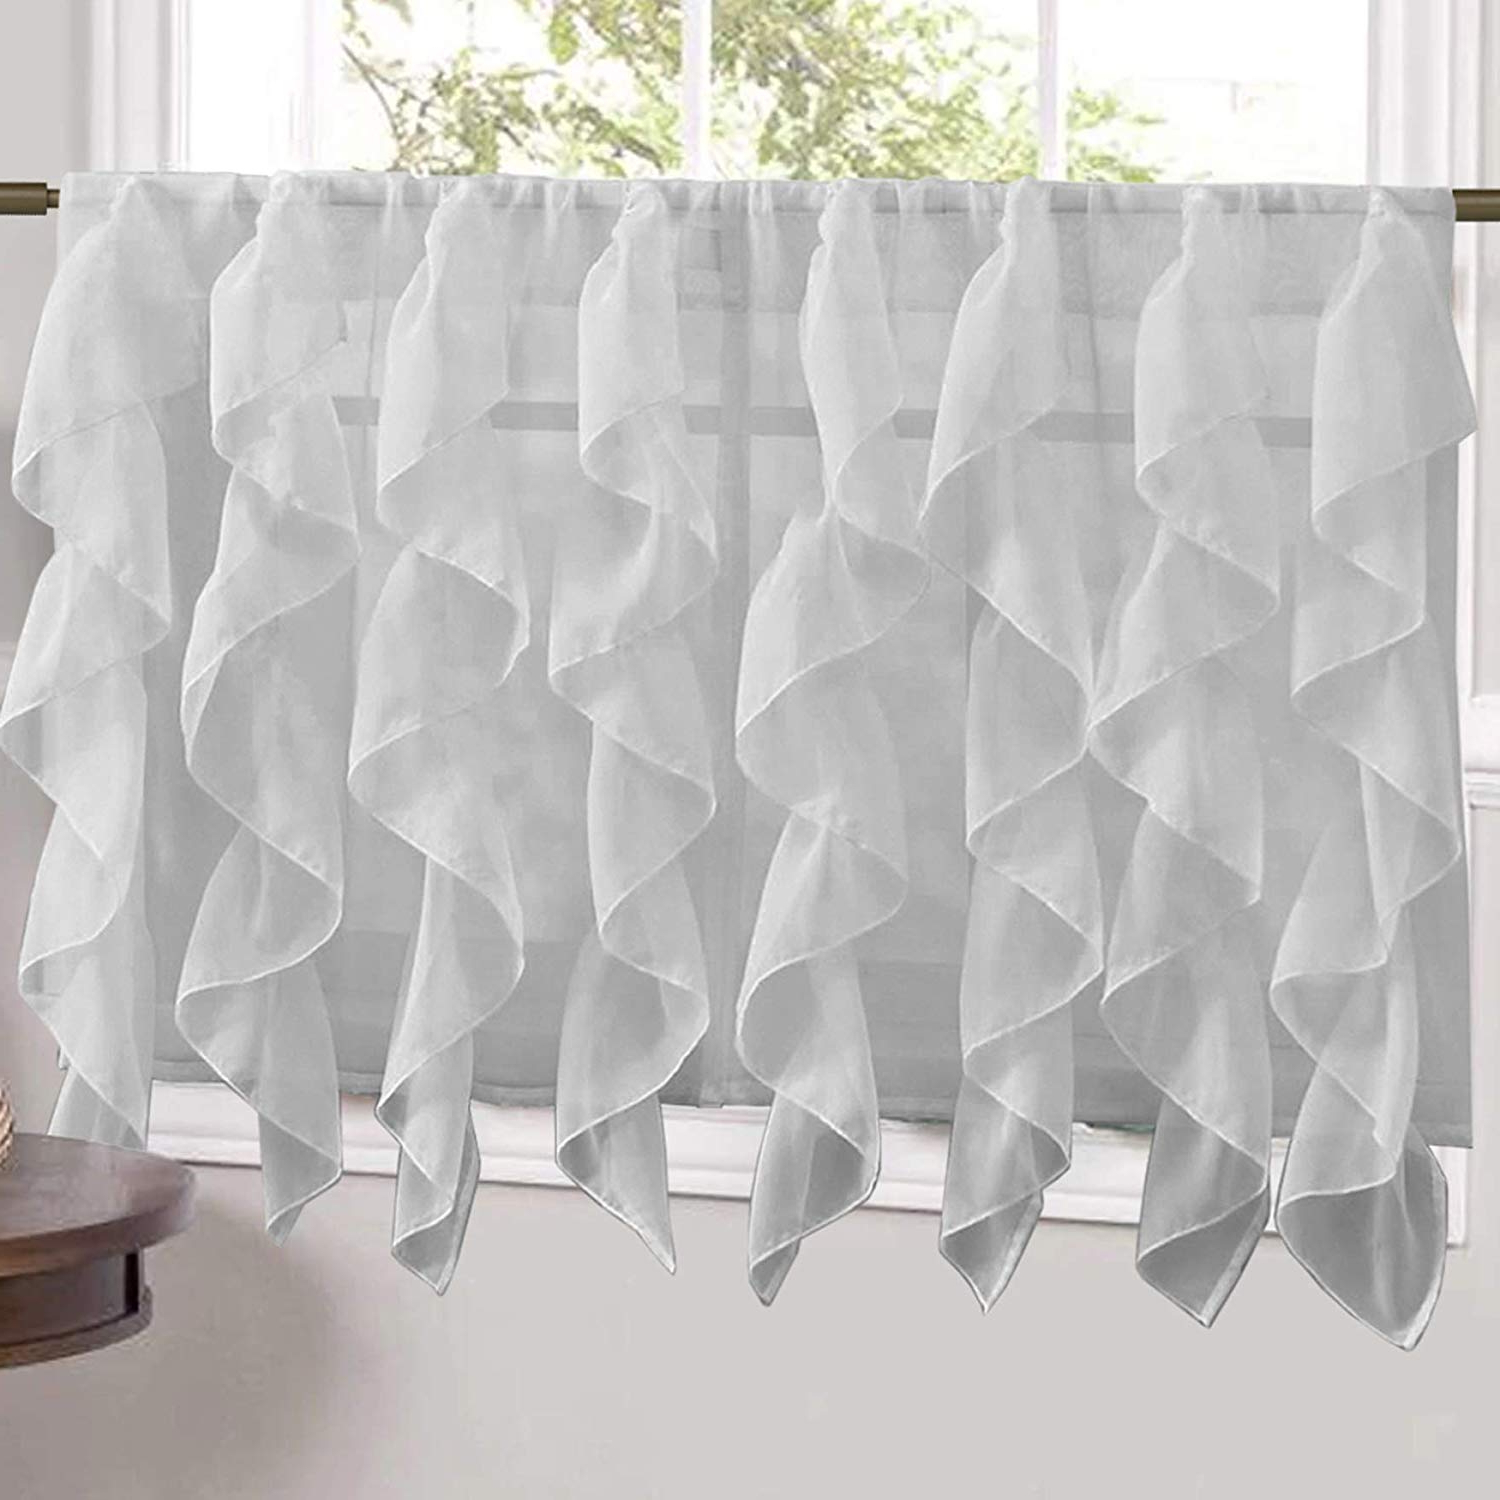 "Famous Silver Vertical Ruffled Waterfall Valance And Curtain Tiers Throughout Sweet Home Collection Veritcal Kitchen Curtain Sheer Cascading Ruffle Waterfall Window Treatment – Choice Of Valance, 24"" Or 36"" Teir, And Kit Tier (View 17 of 20)"